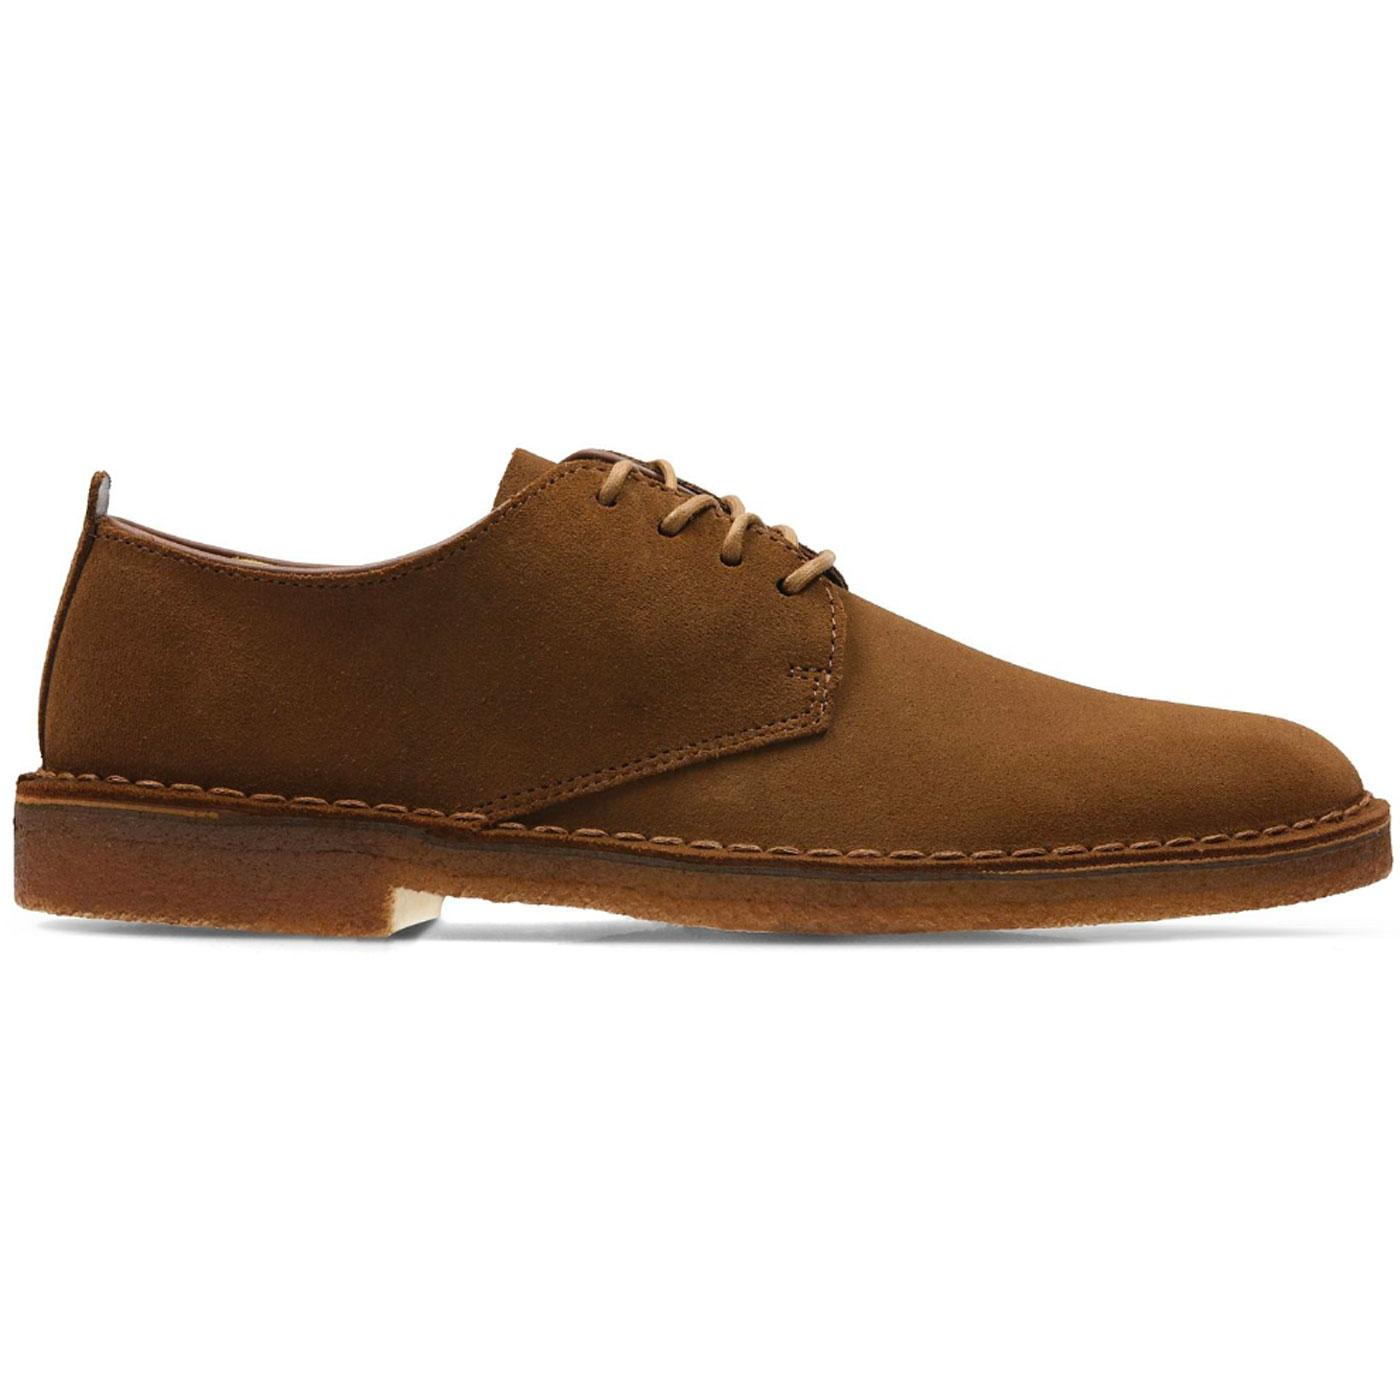 Desert London CLARKS ORIGINALS Suede Shoes (Cola)